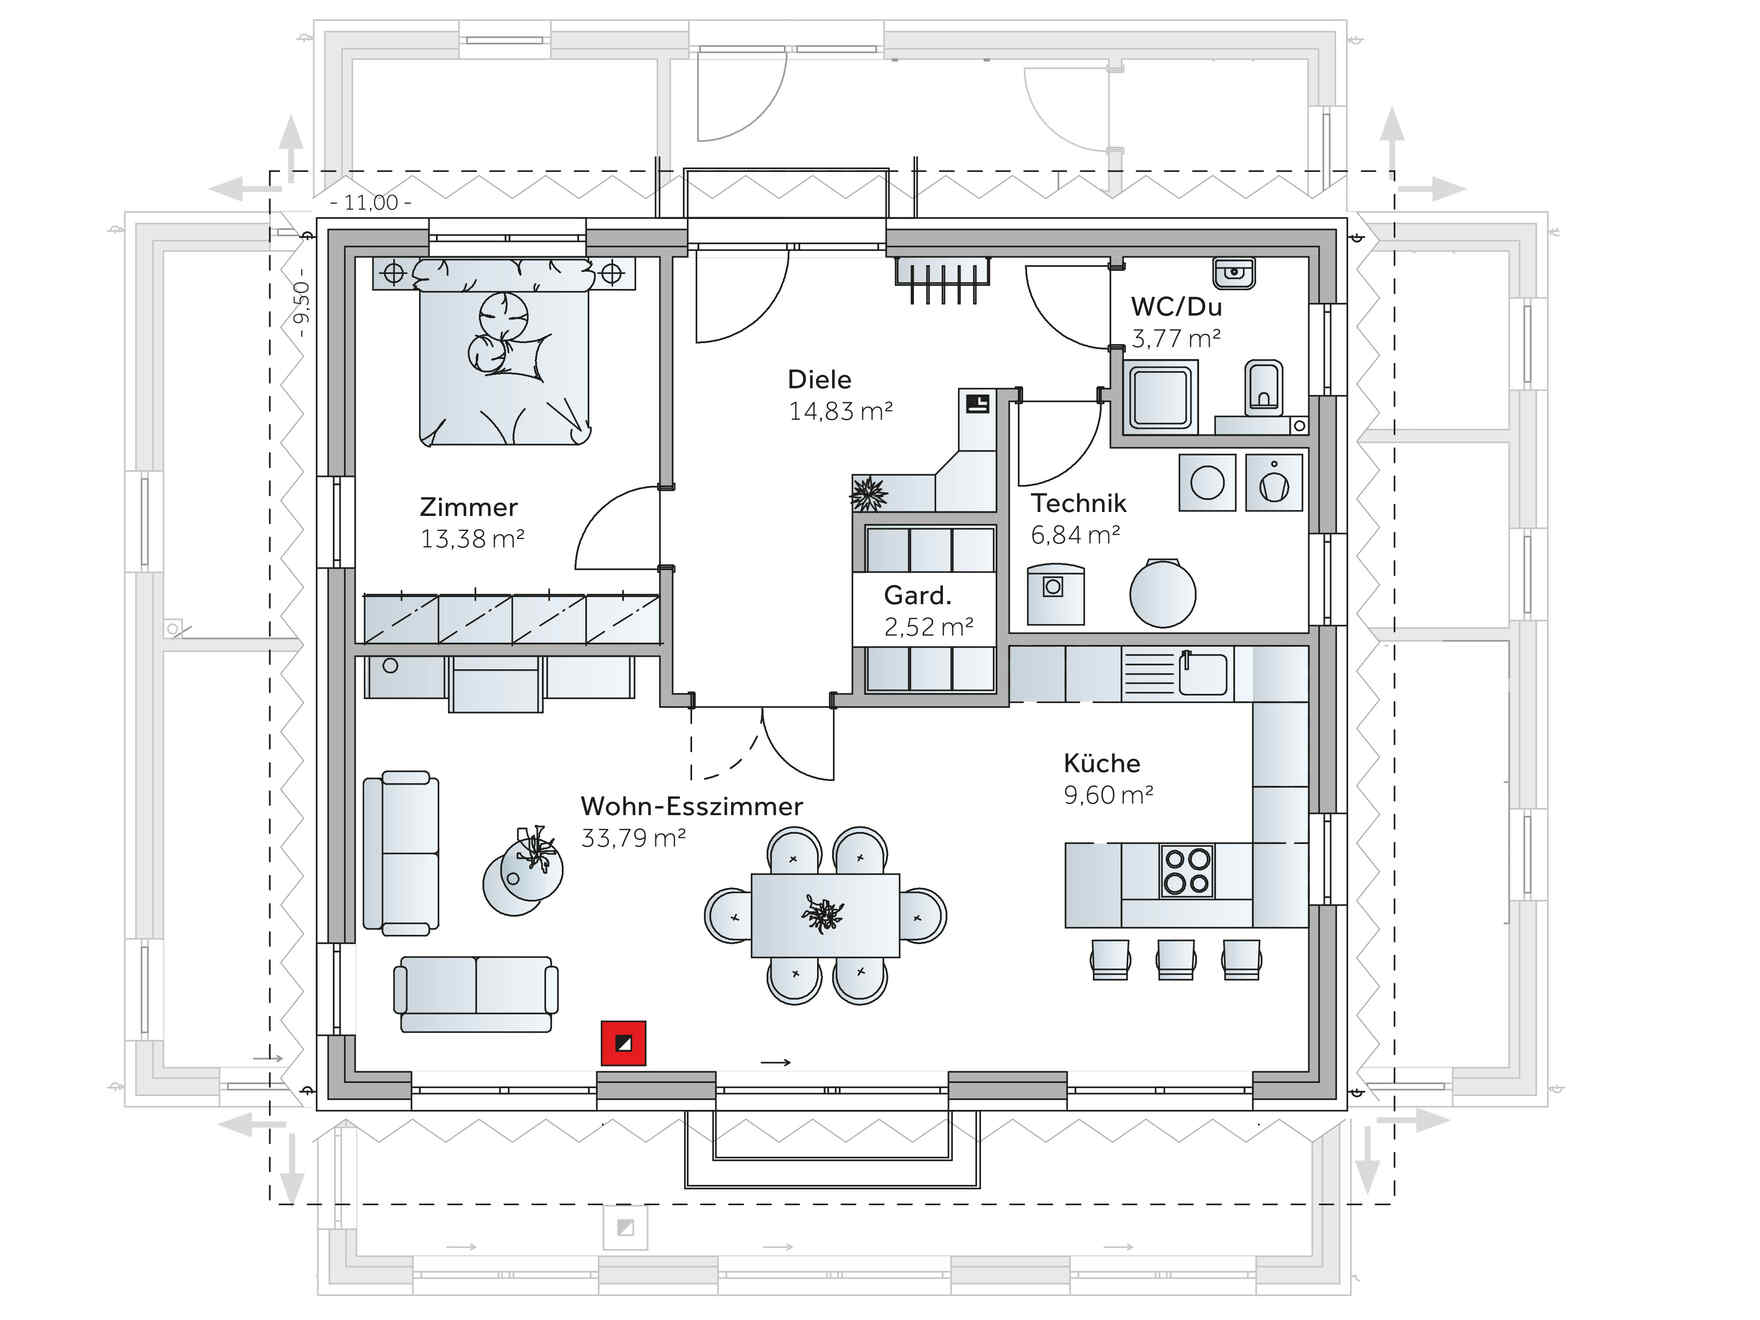 Bungalow Plan 60 M2